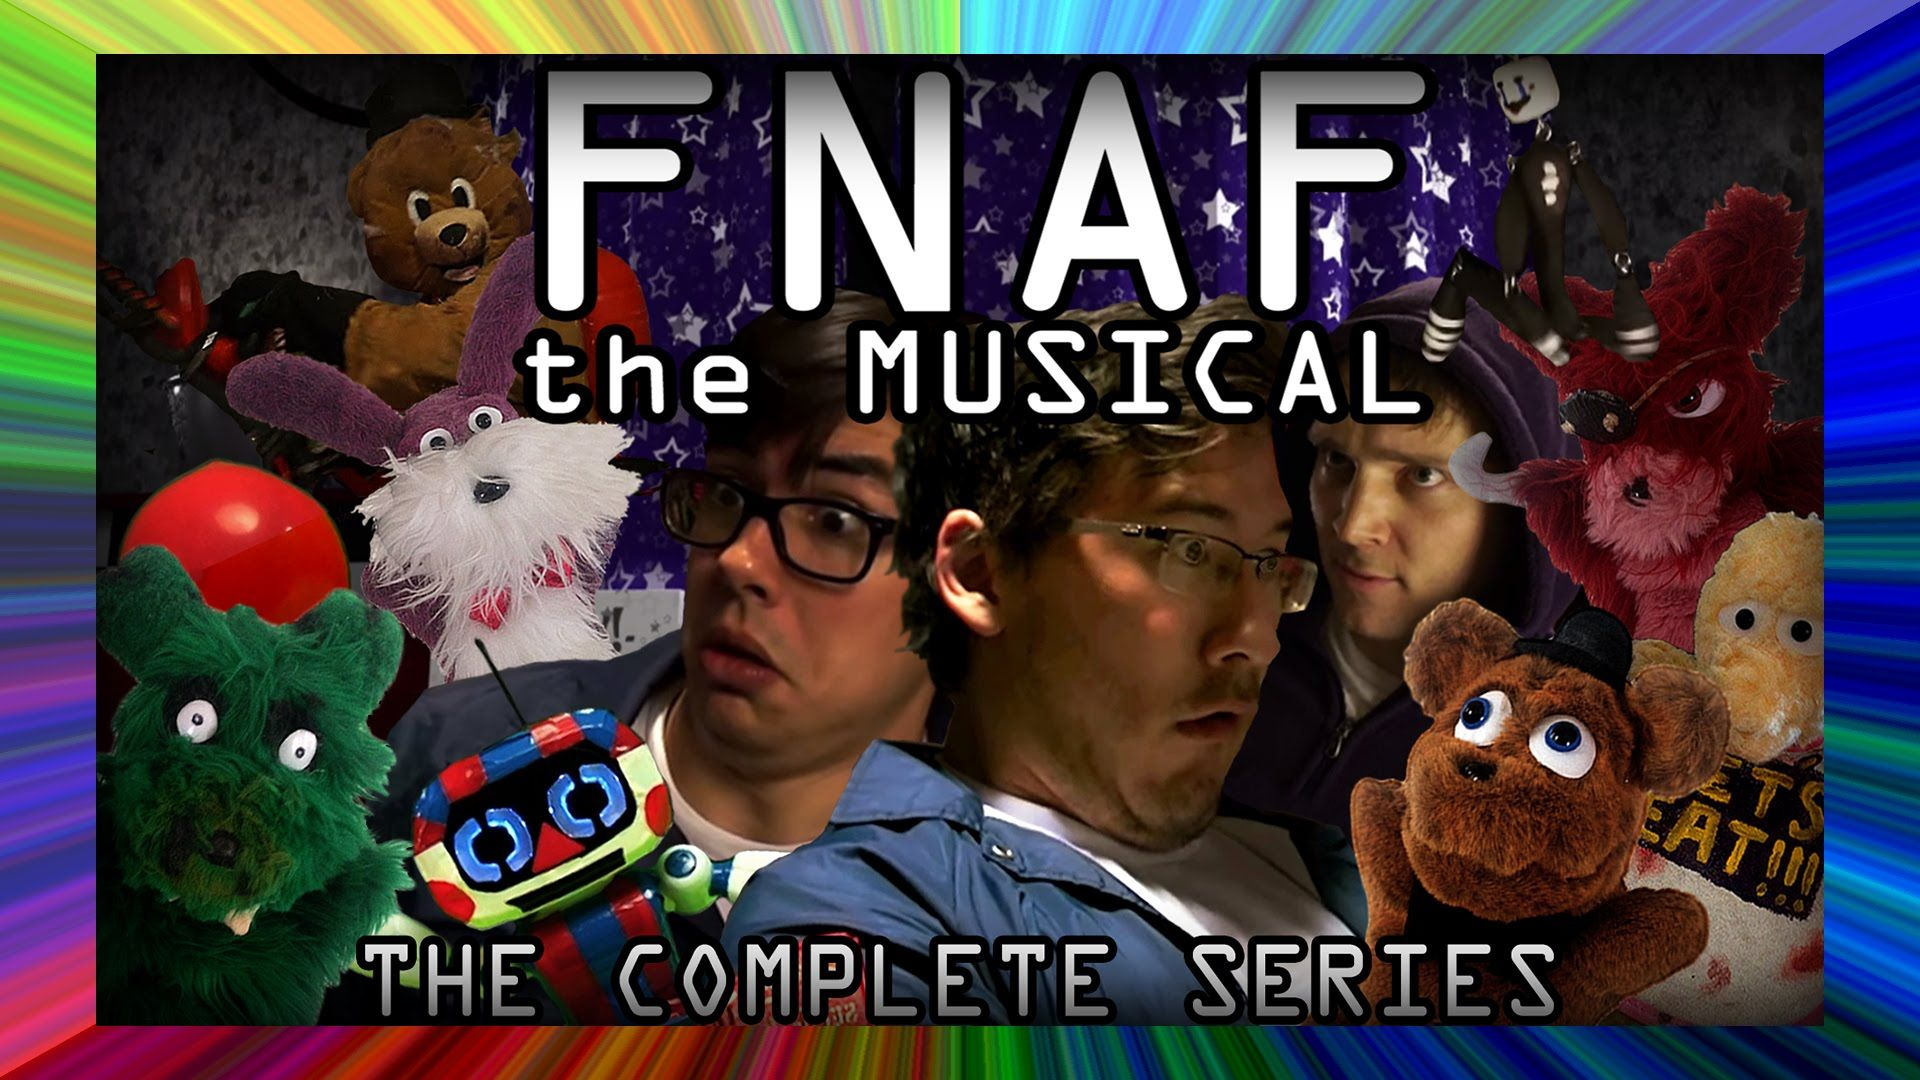 FNAF The Musical SUPERCUT The Complete Series (feat